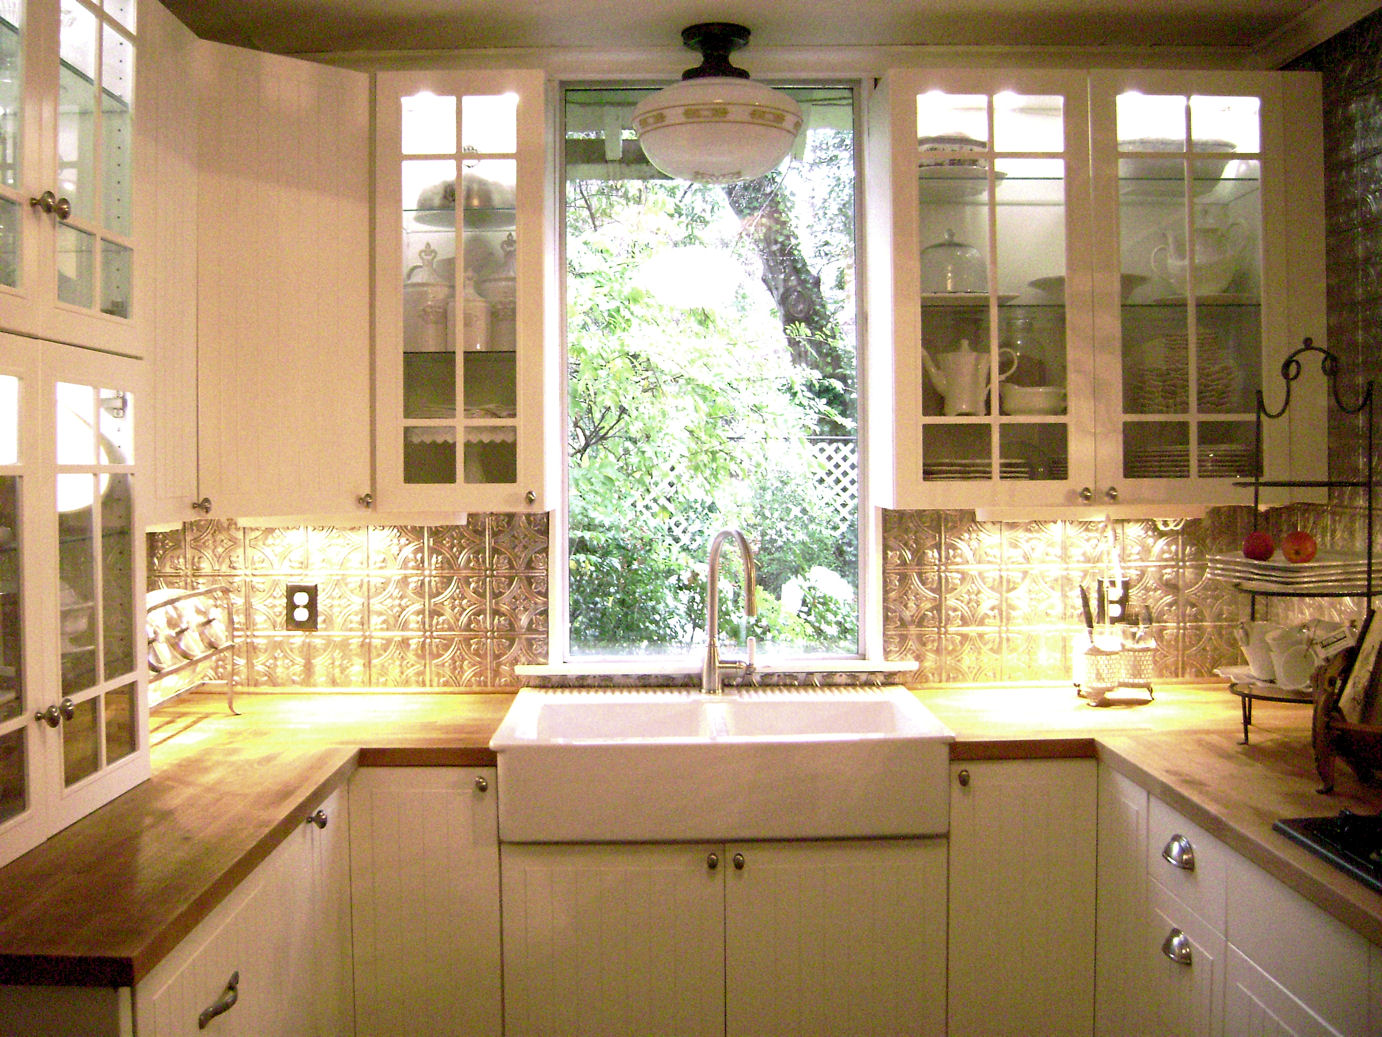 Kitchen island lowes photo - 1